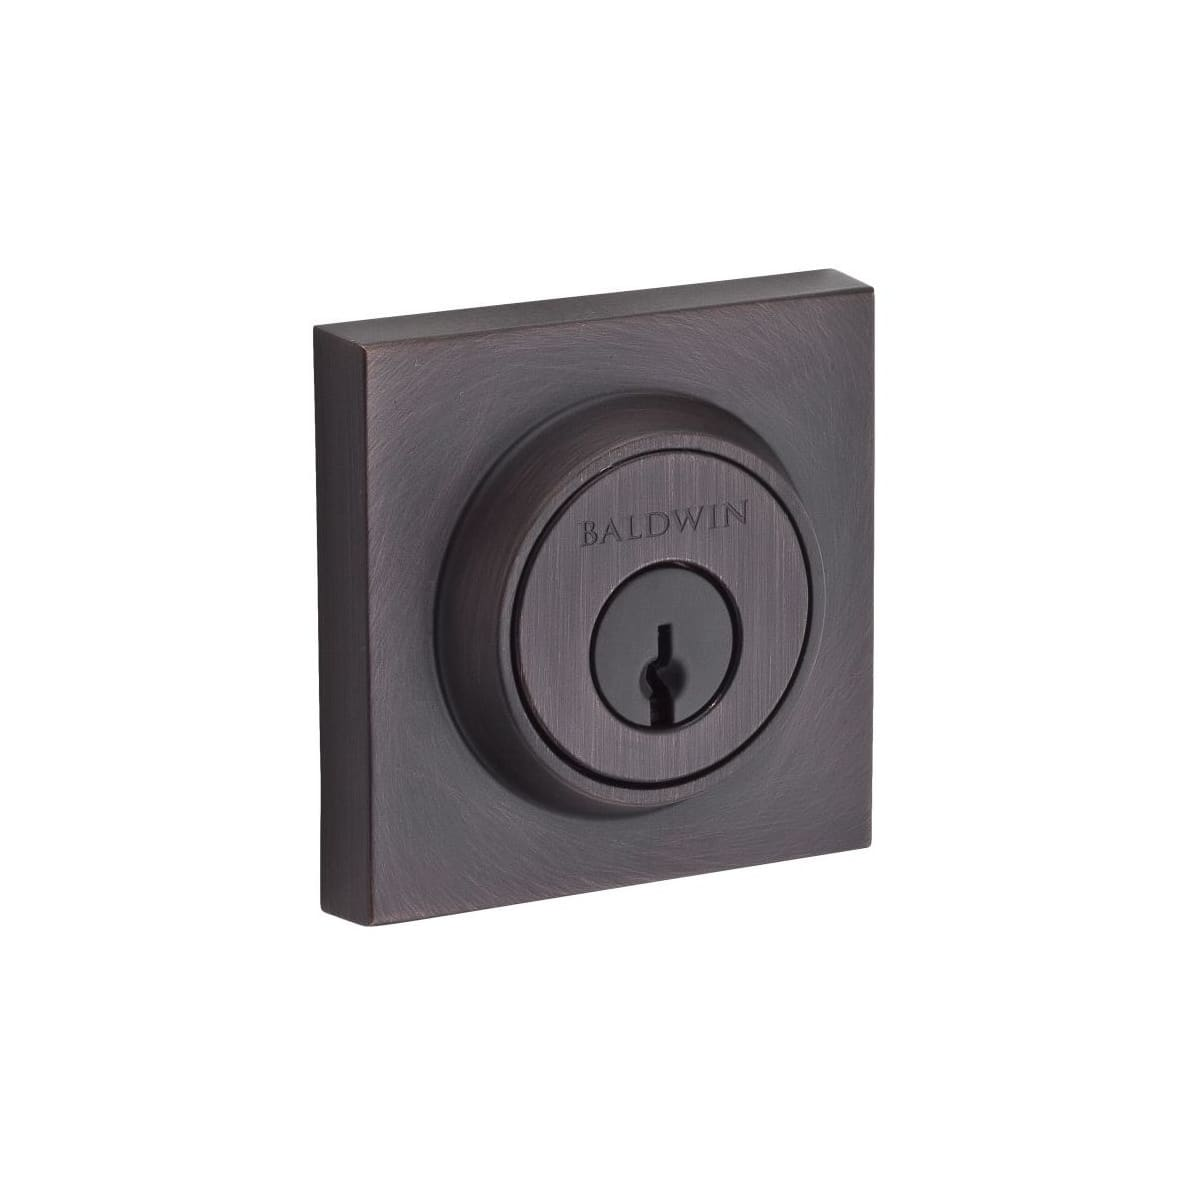 Baldwin Contemporary Square Standard C Keyway Single Cylinder Keyed Entry Deadbolt